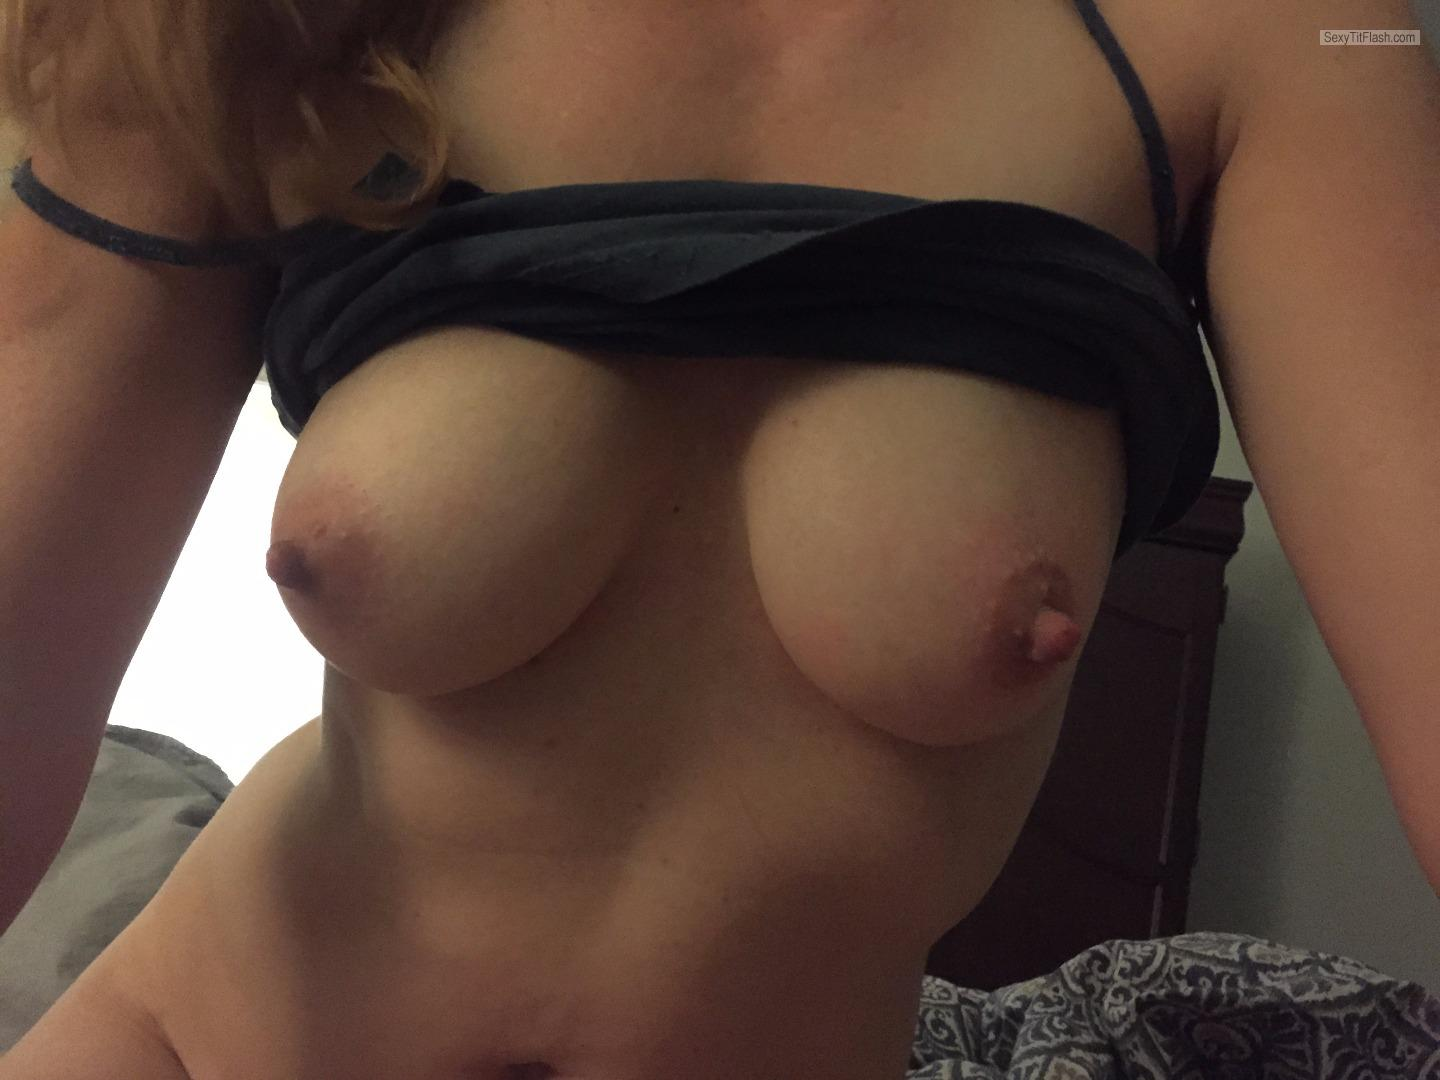 Tit Flash: My Small Tits - Clara from United States